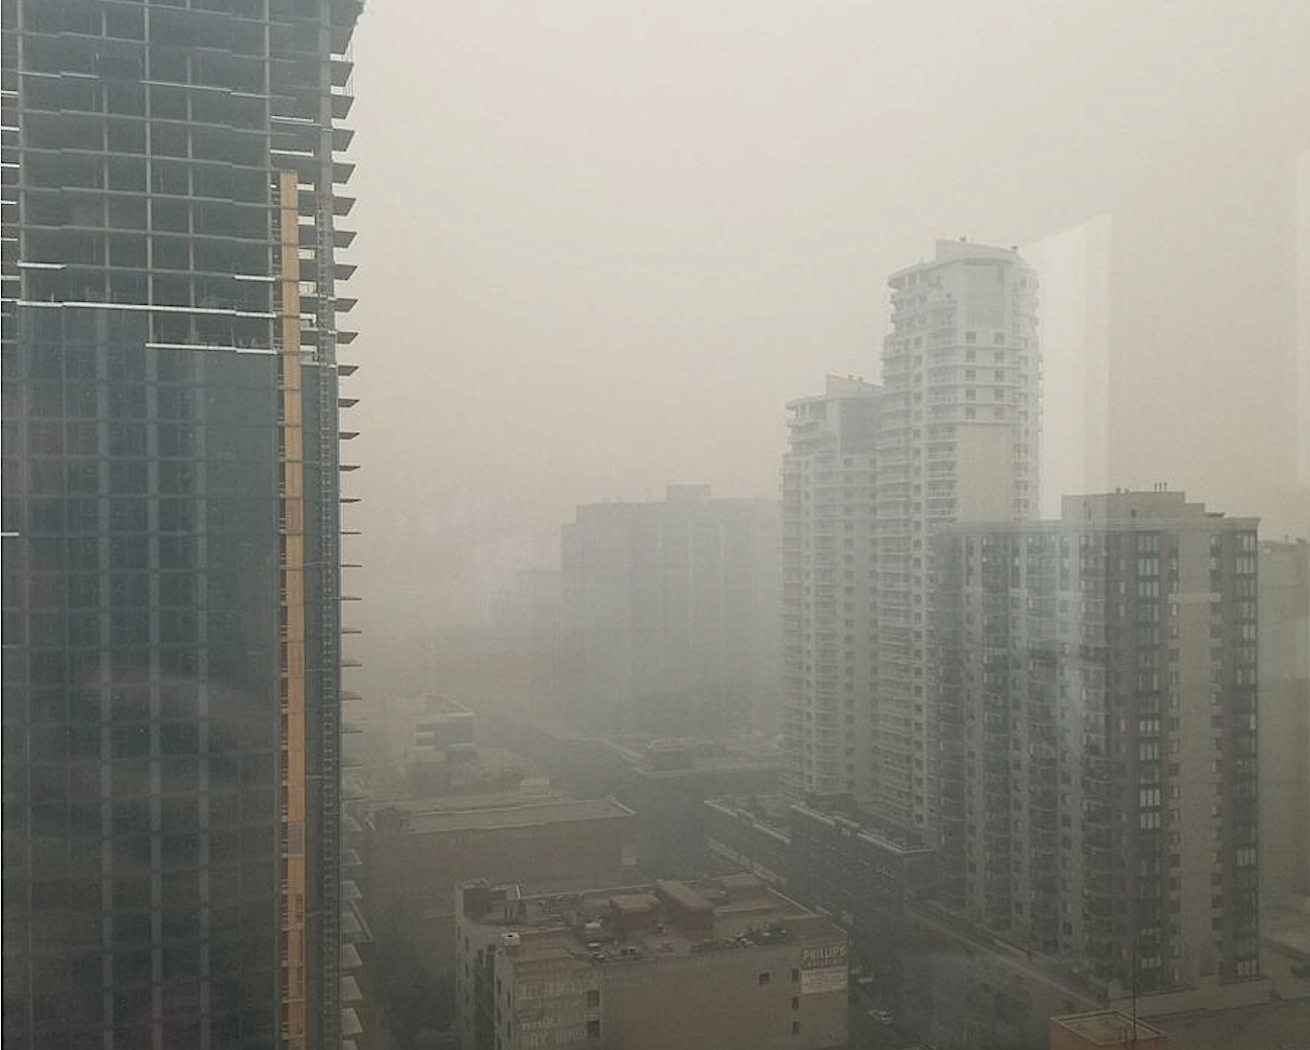 Smoke from massive wildfires shrouds Canadian cities in